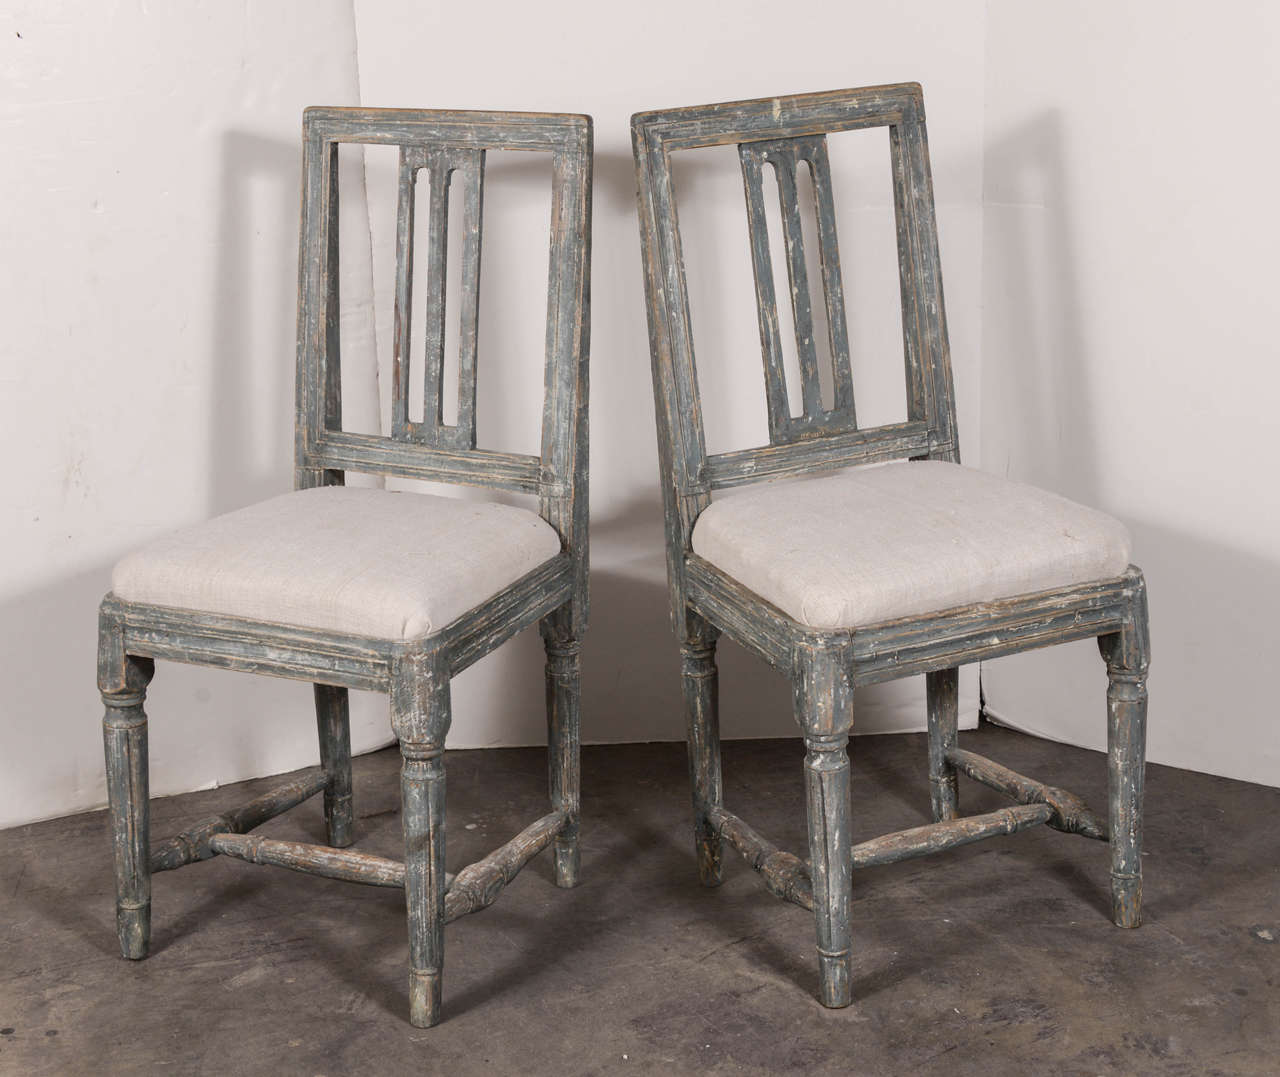 Swedish Gustavian Blue Painted Slat Back Dining Chairs from circa 1790 In Good Condition For Sale In Houston, TX